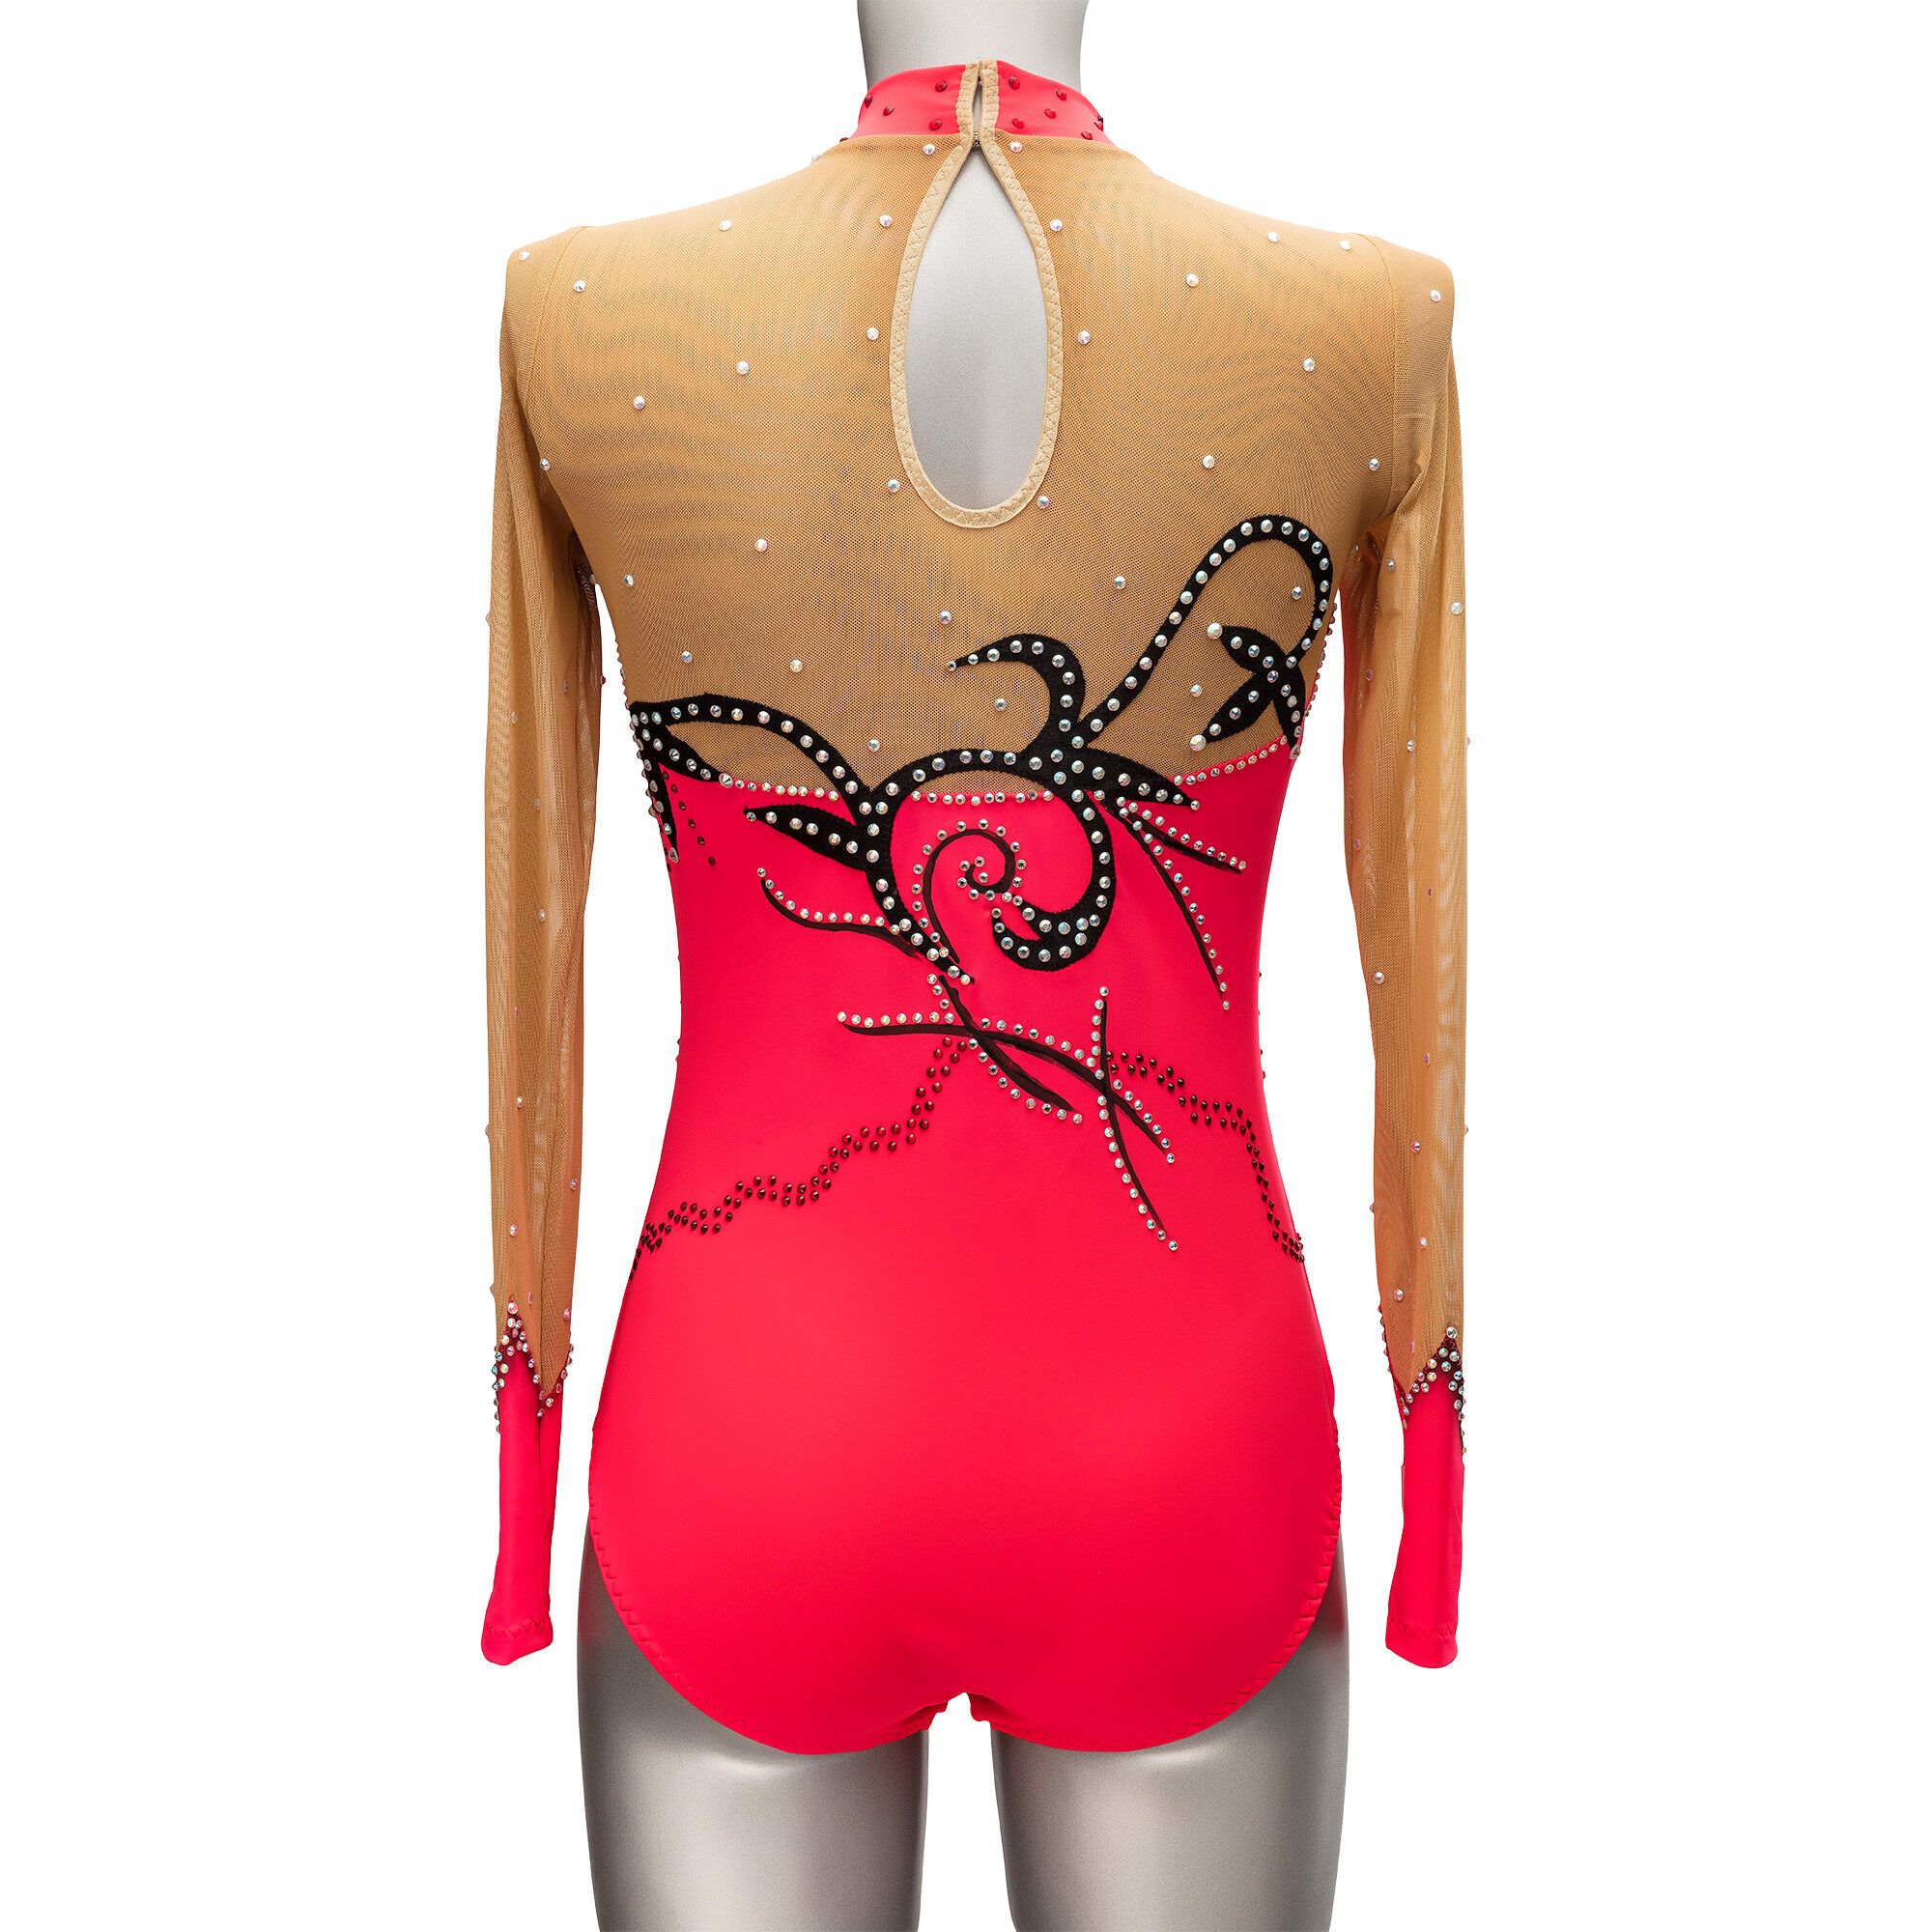 Rhythmic Gymnastics Leotard № 25 could be sewn as Dress Rhythmic Gymnastics, Ice Figure Skating Dress, Costume Acrobatic Gymnastics, Baton Twirling or Dance Leotard Suit. Embellished stand-up collar and accents on the sleeves.